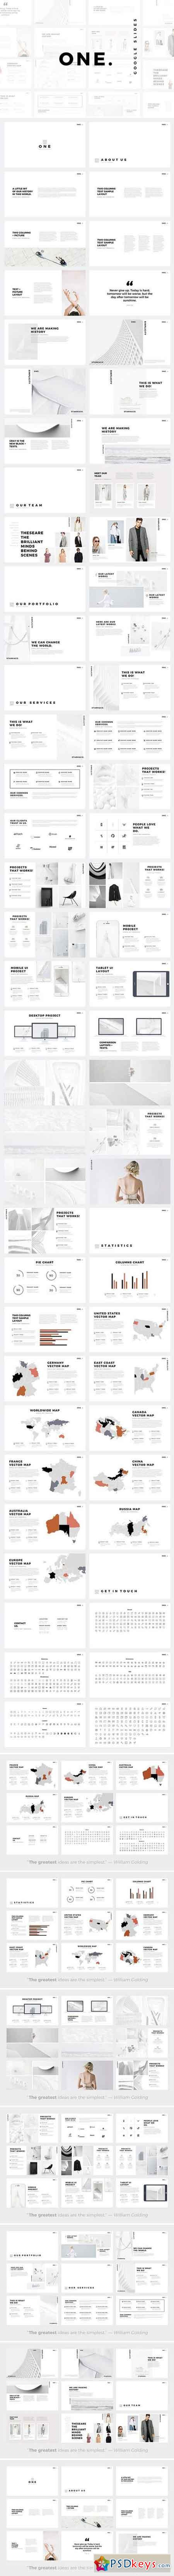 ONE Minimal Google Slides Template 1884092